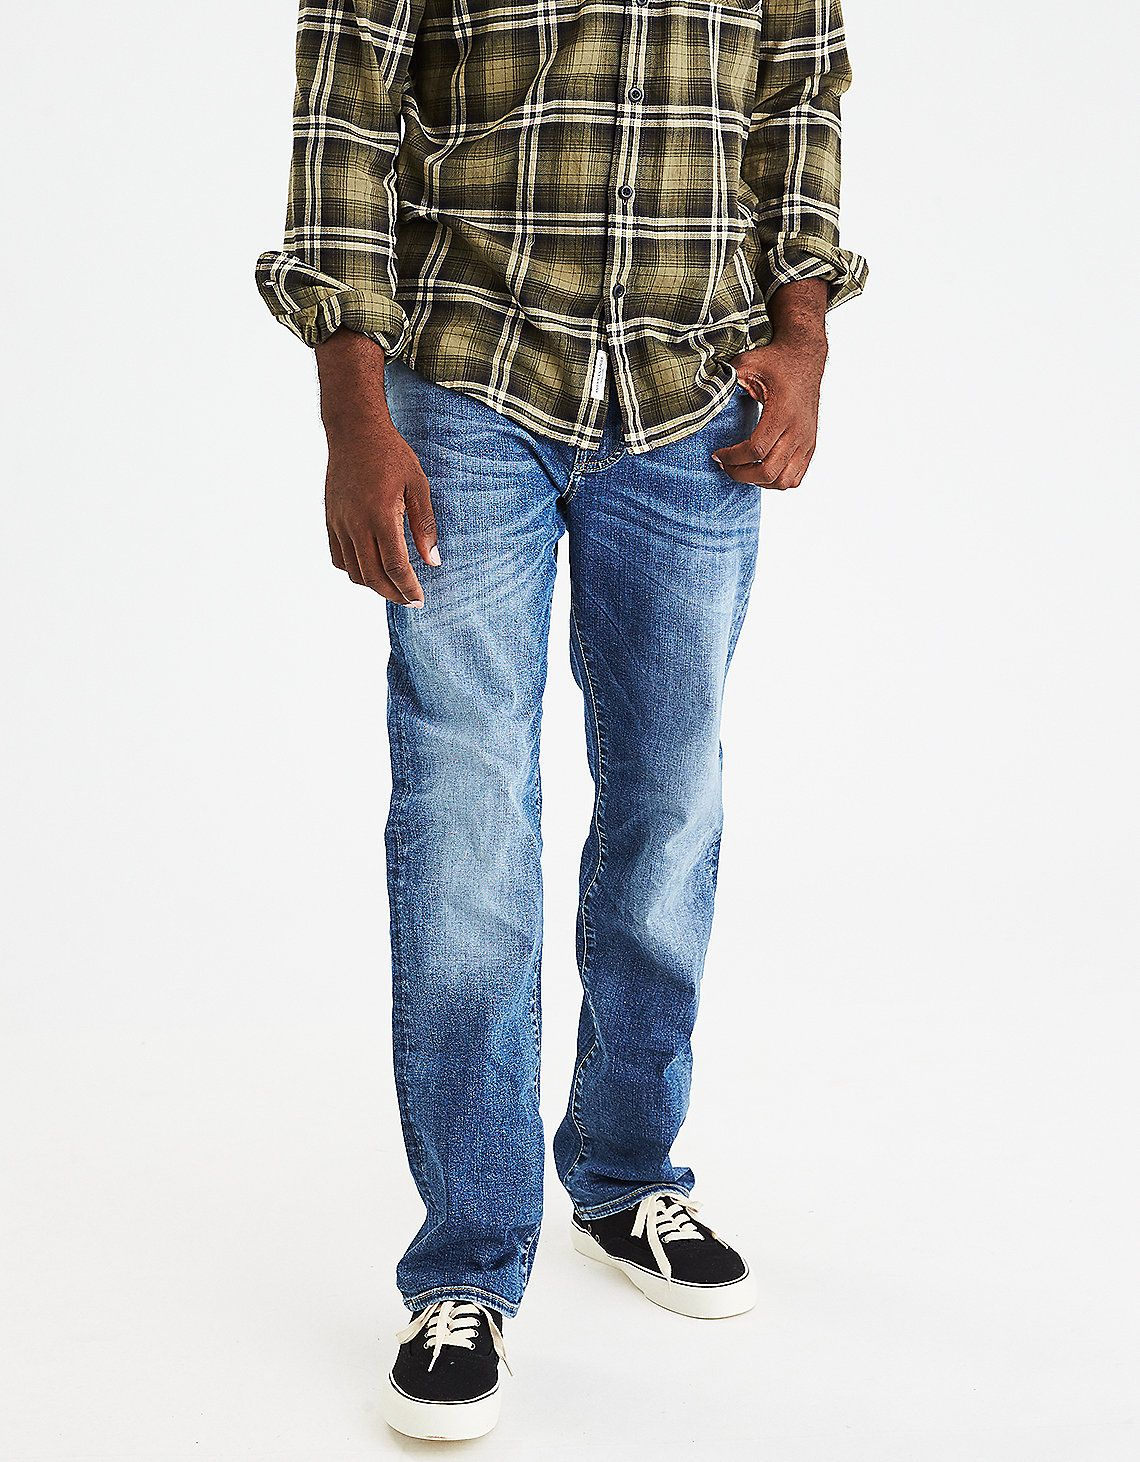 55848c7bb0b Aeo, Mens Outfitters, American Eagle Outfitters, Mom Jeans, Skinny